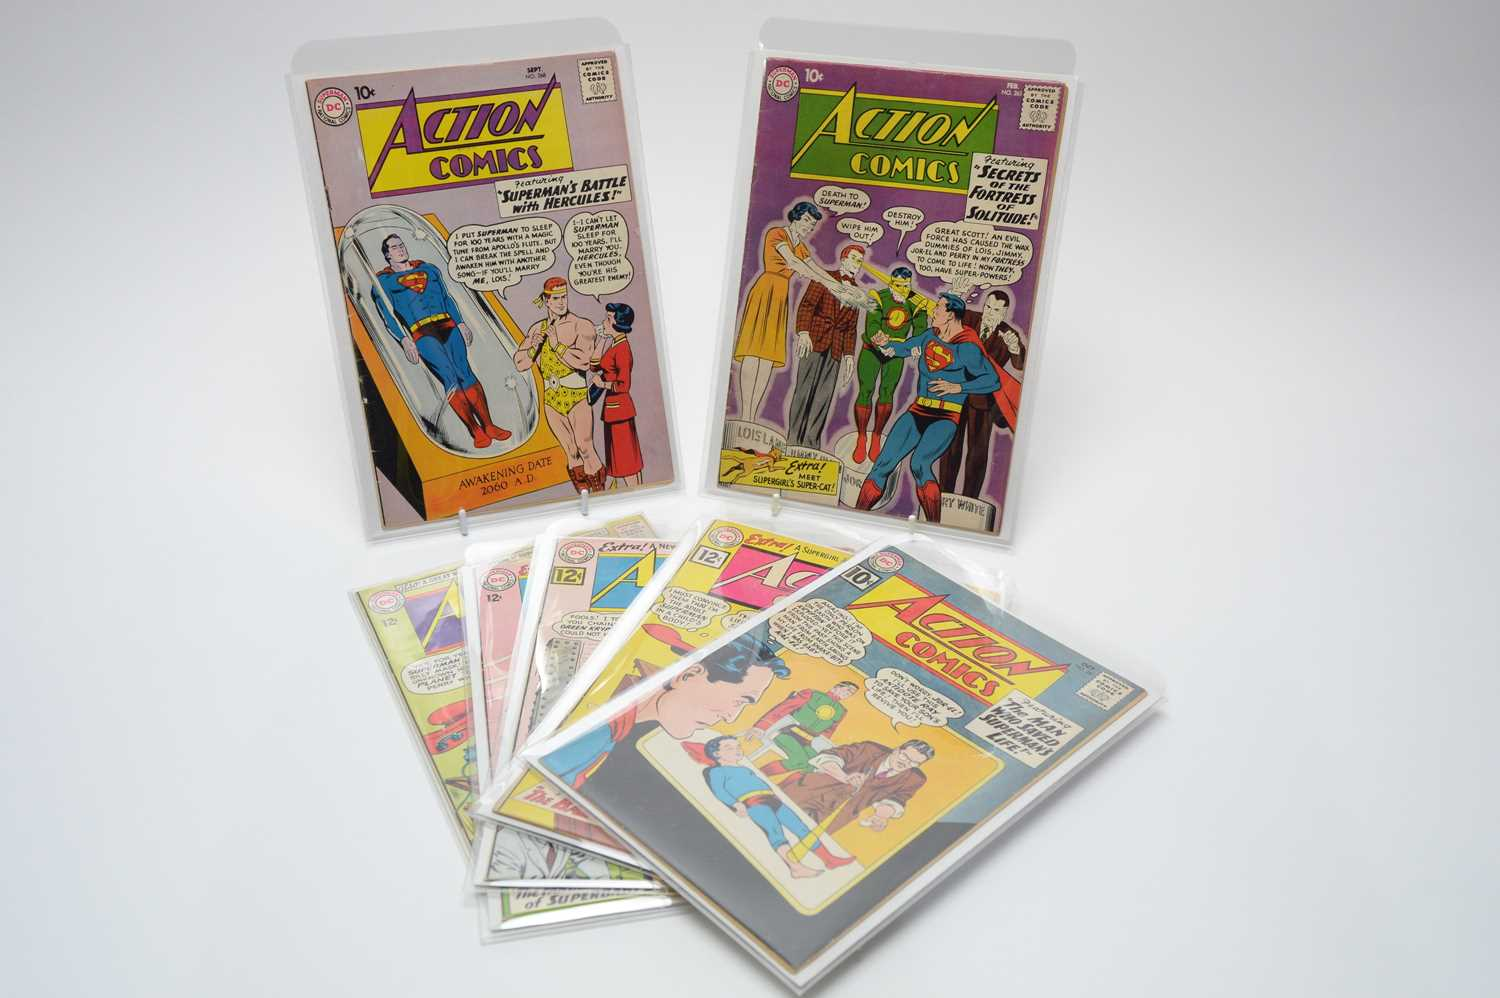 Lot 17 - Action Comics by DC.